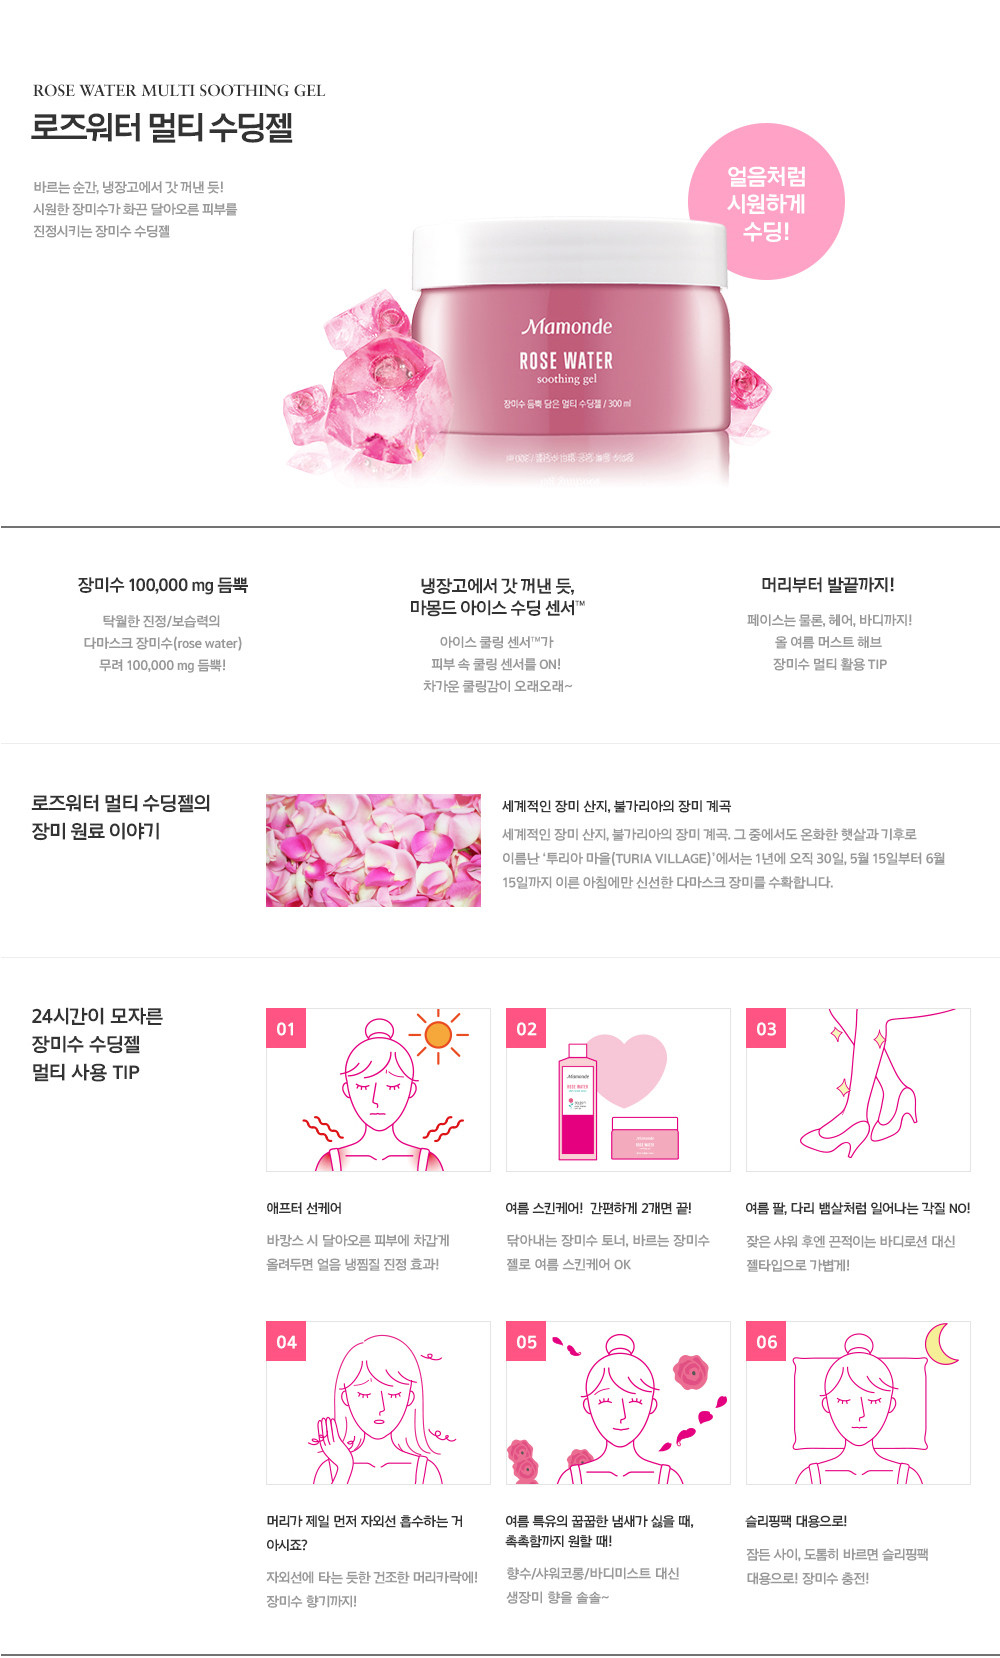 http://shopdep24h.com/images/mat-na/mamonde-gel-hoa-hong-duong-da-da-nang/Mamonde-Rose-Water-Multi-Soothing-Gel-300ml-Desc.jpg